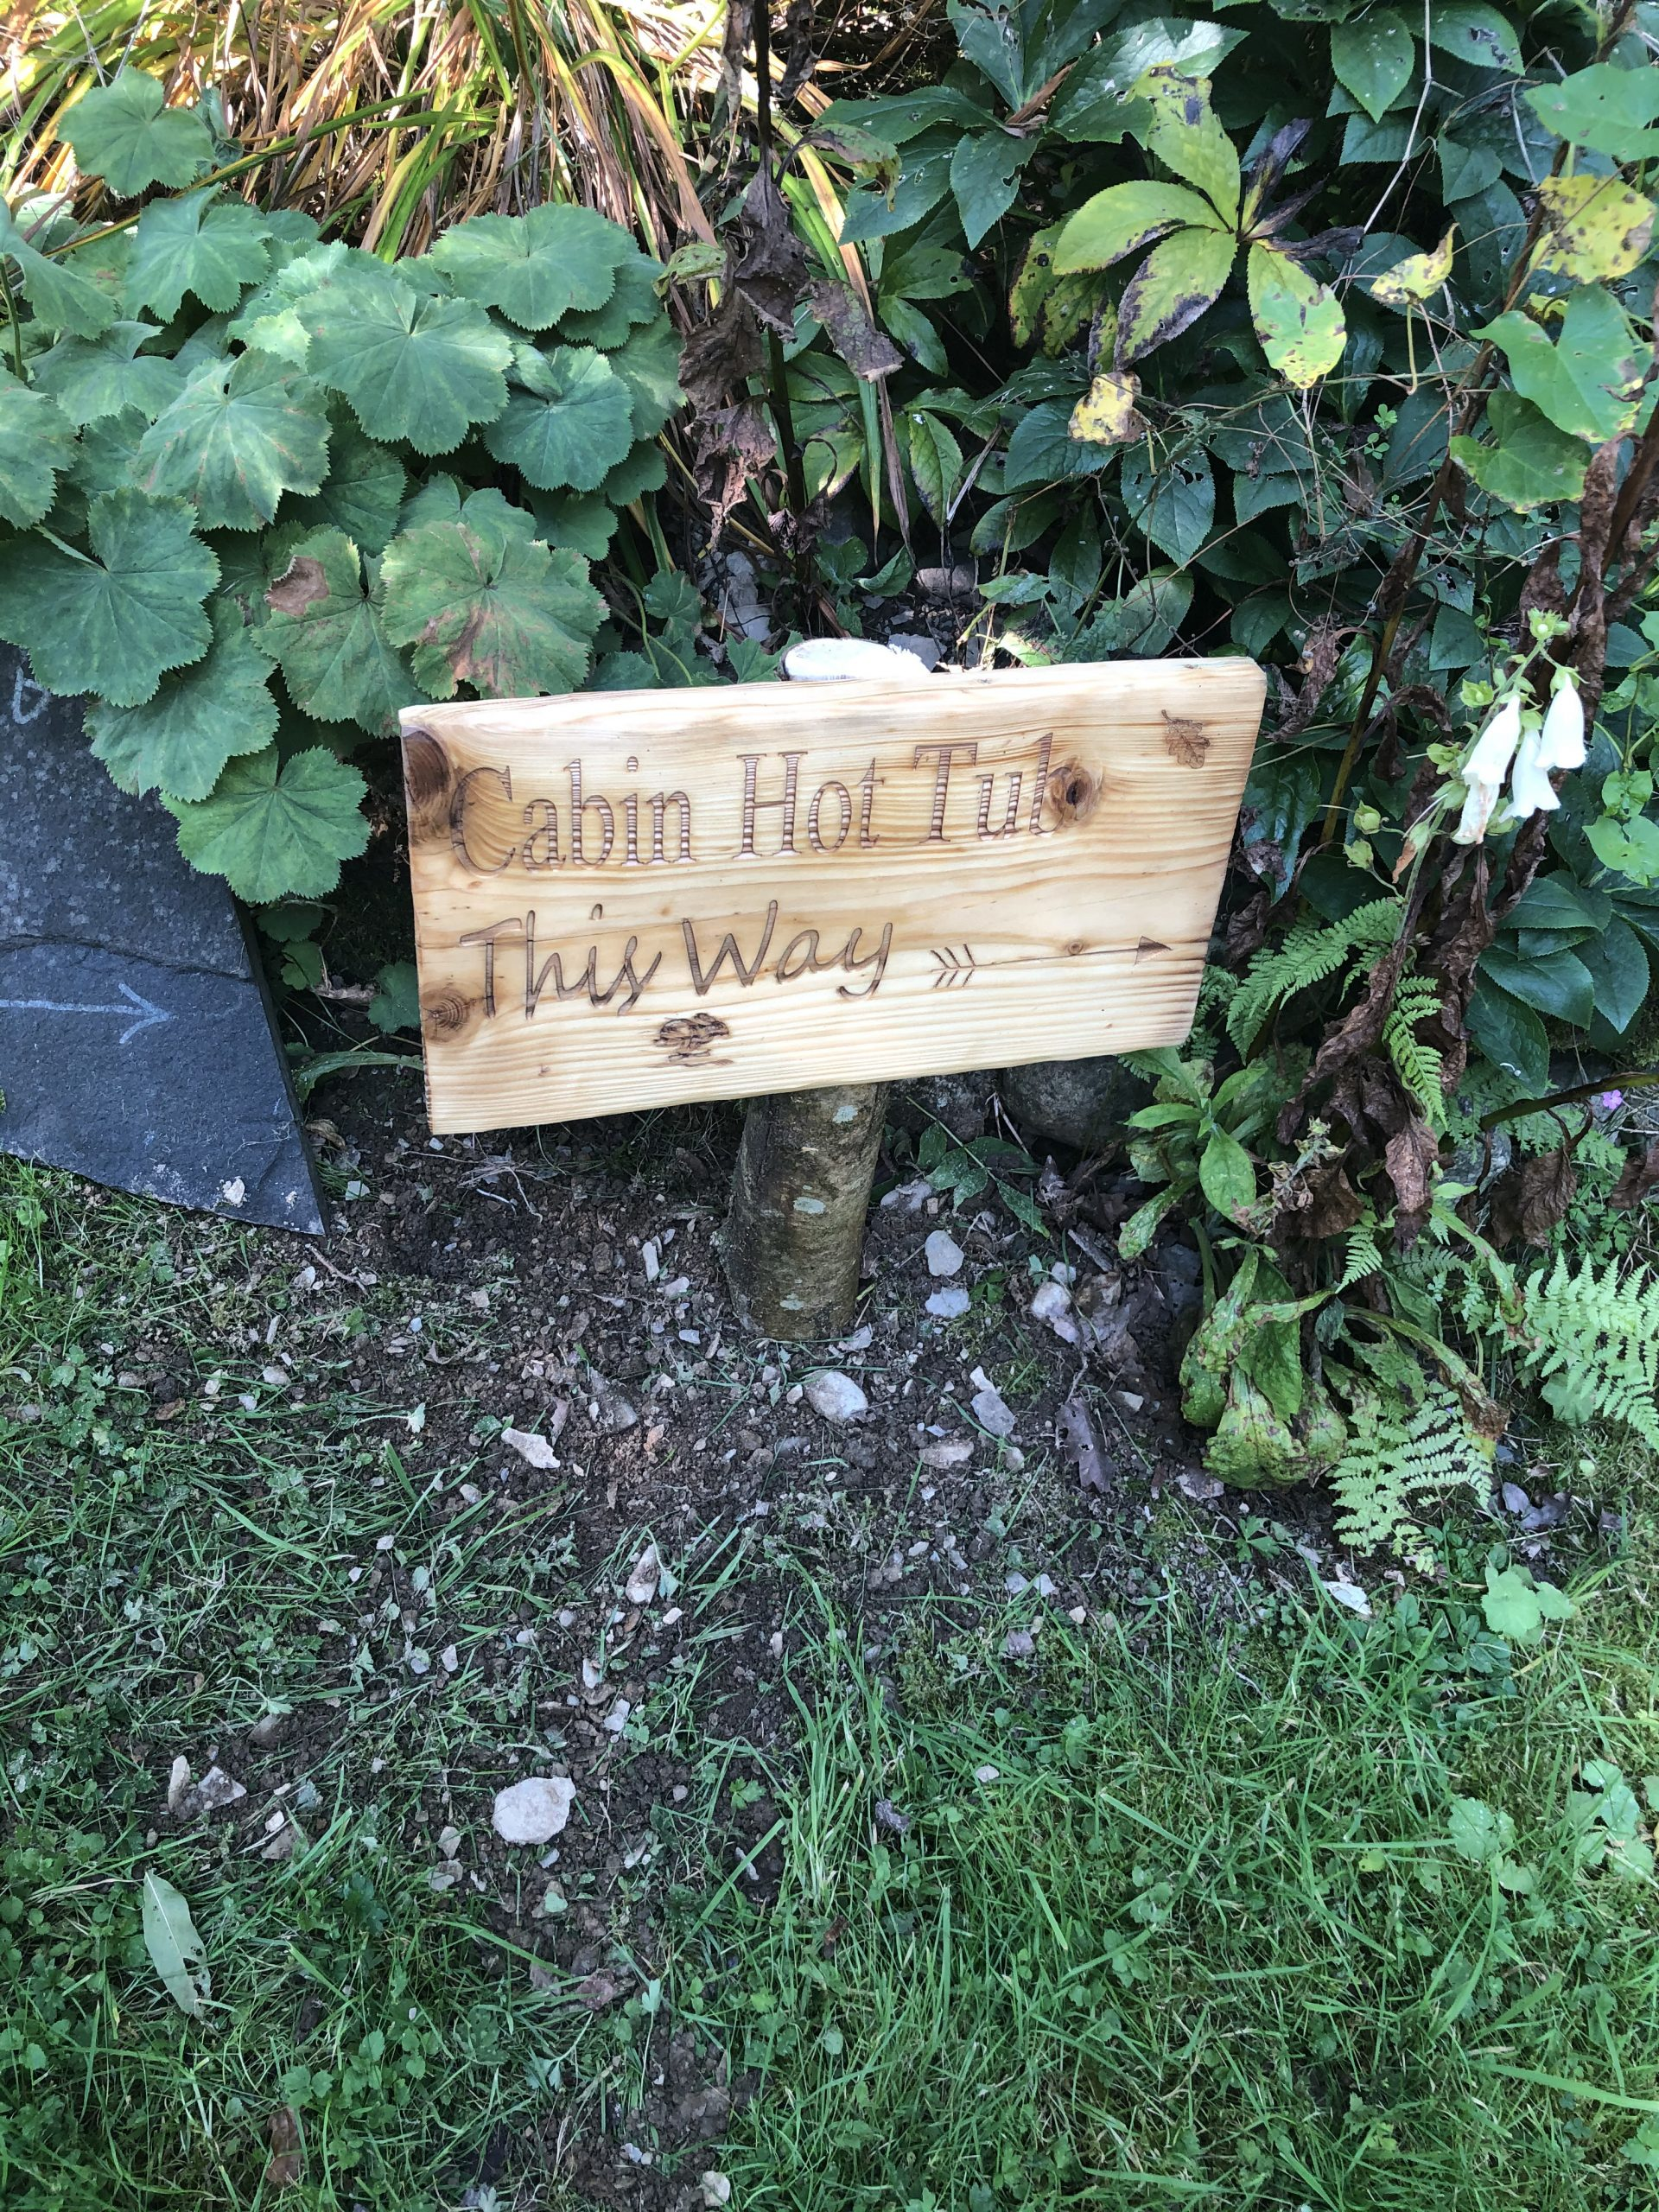 Rustic wooden sign in woods reads Cabin Hot Tub This Way